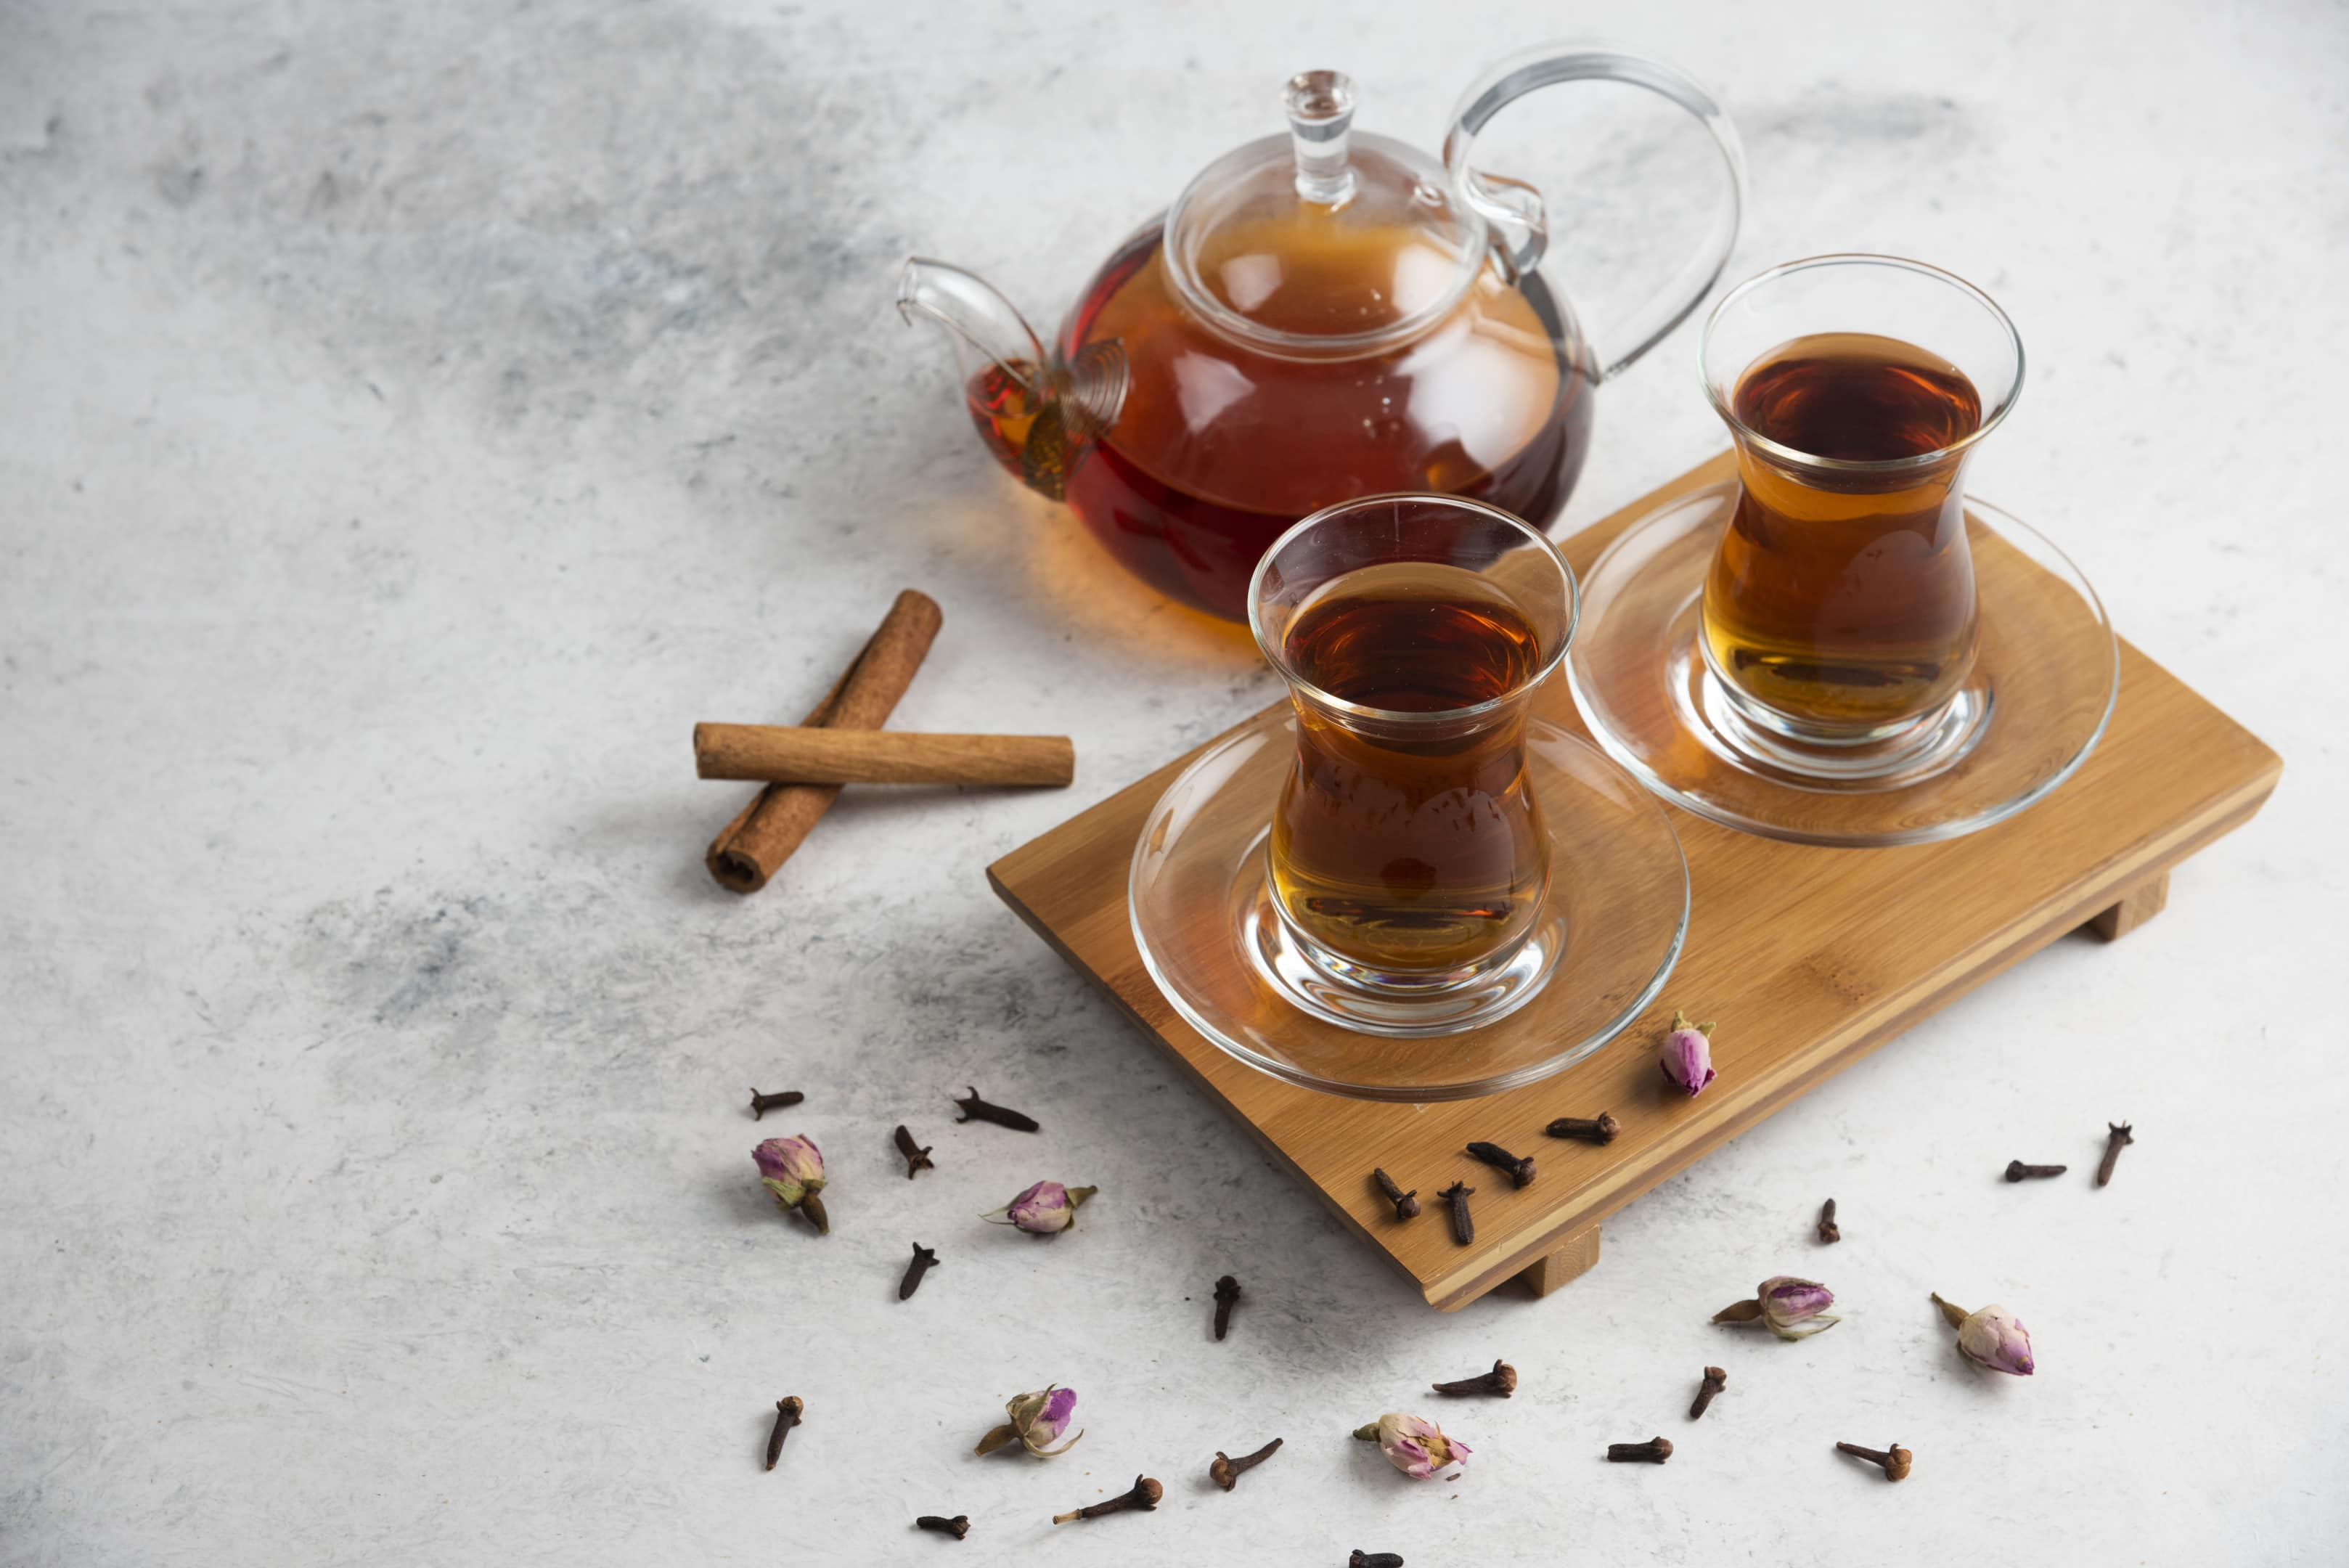 Cups of tea with cloves cinnamon sticks and dried roses